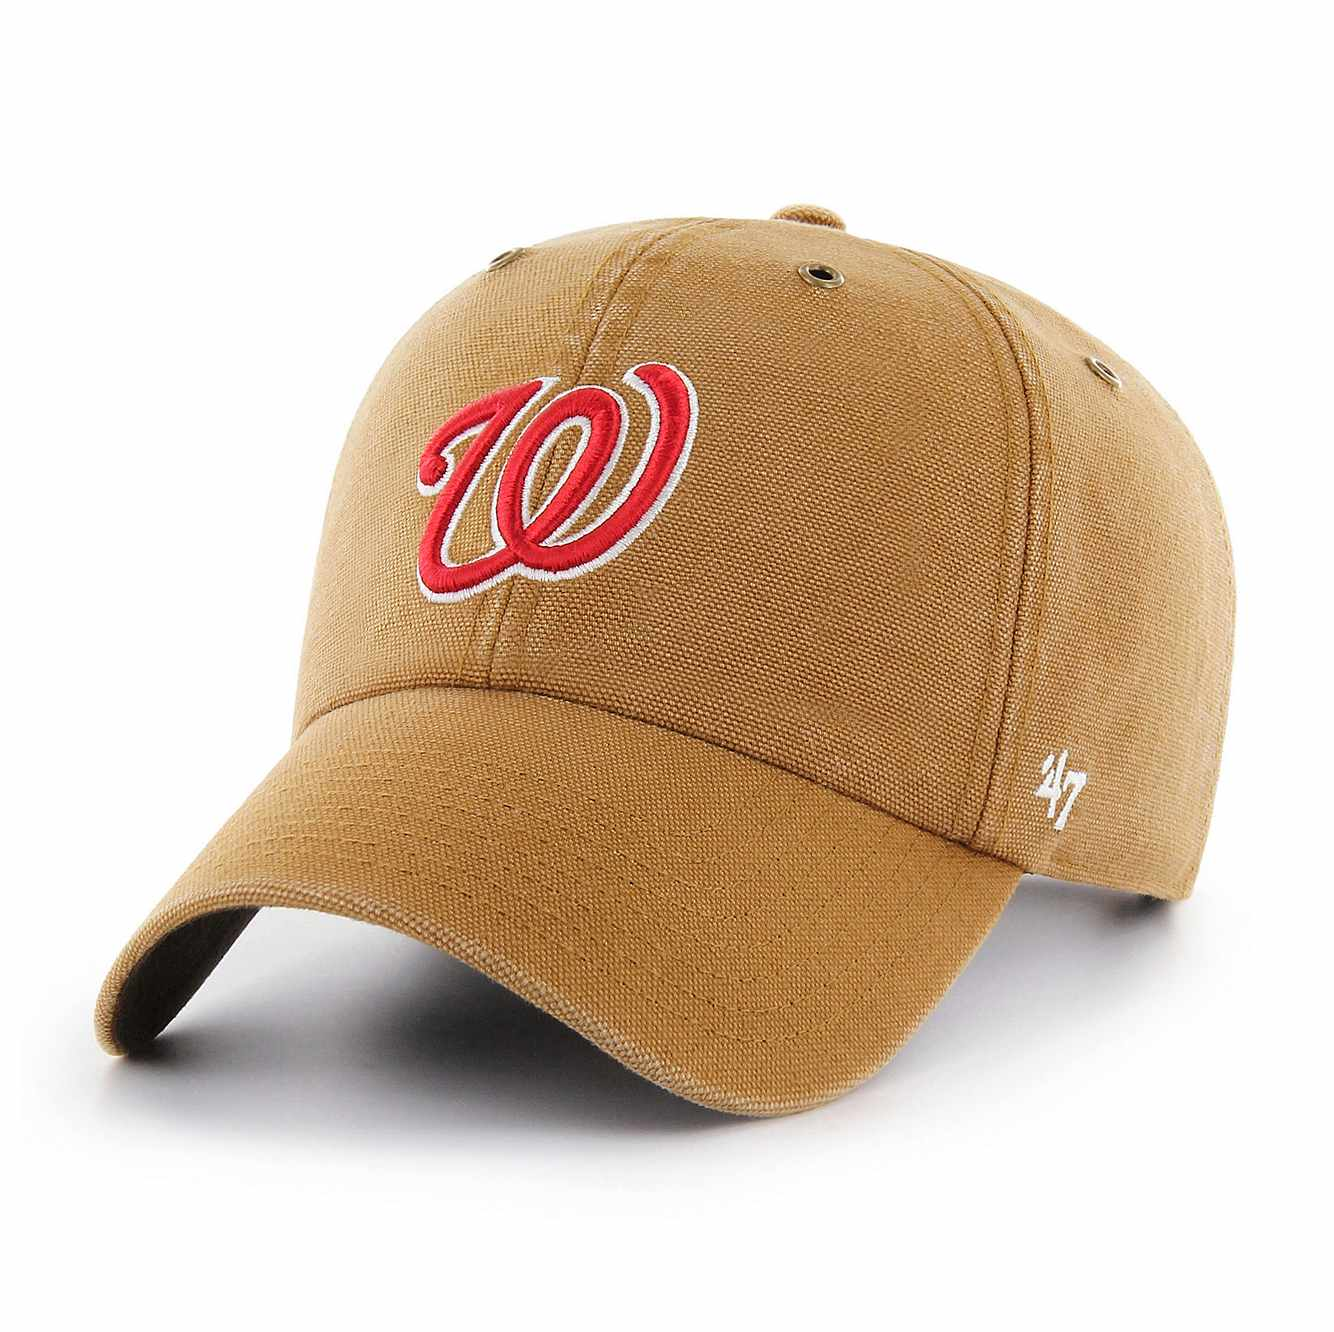 Picture of Washington Nationals Carhartt x '47 Clean Up in Carhartt Brown